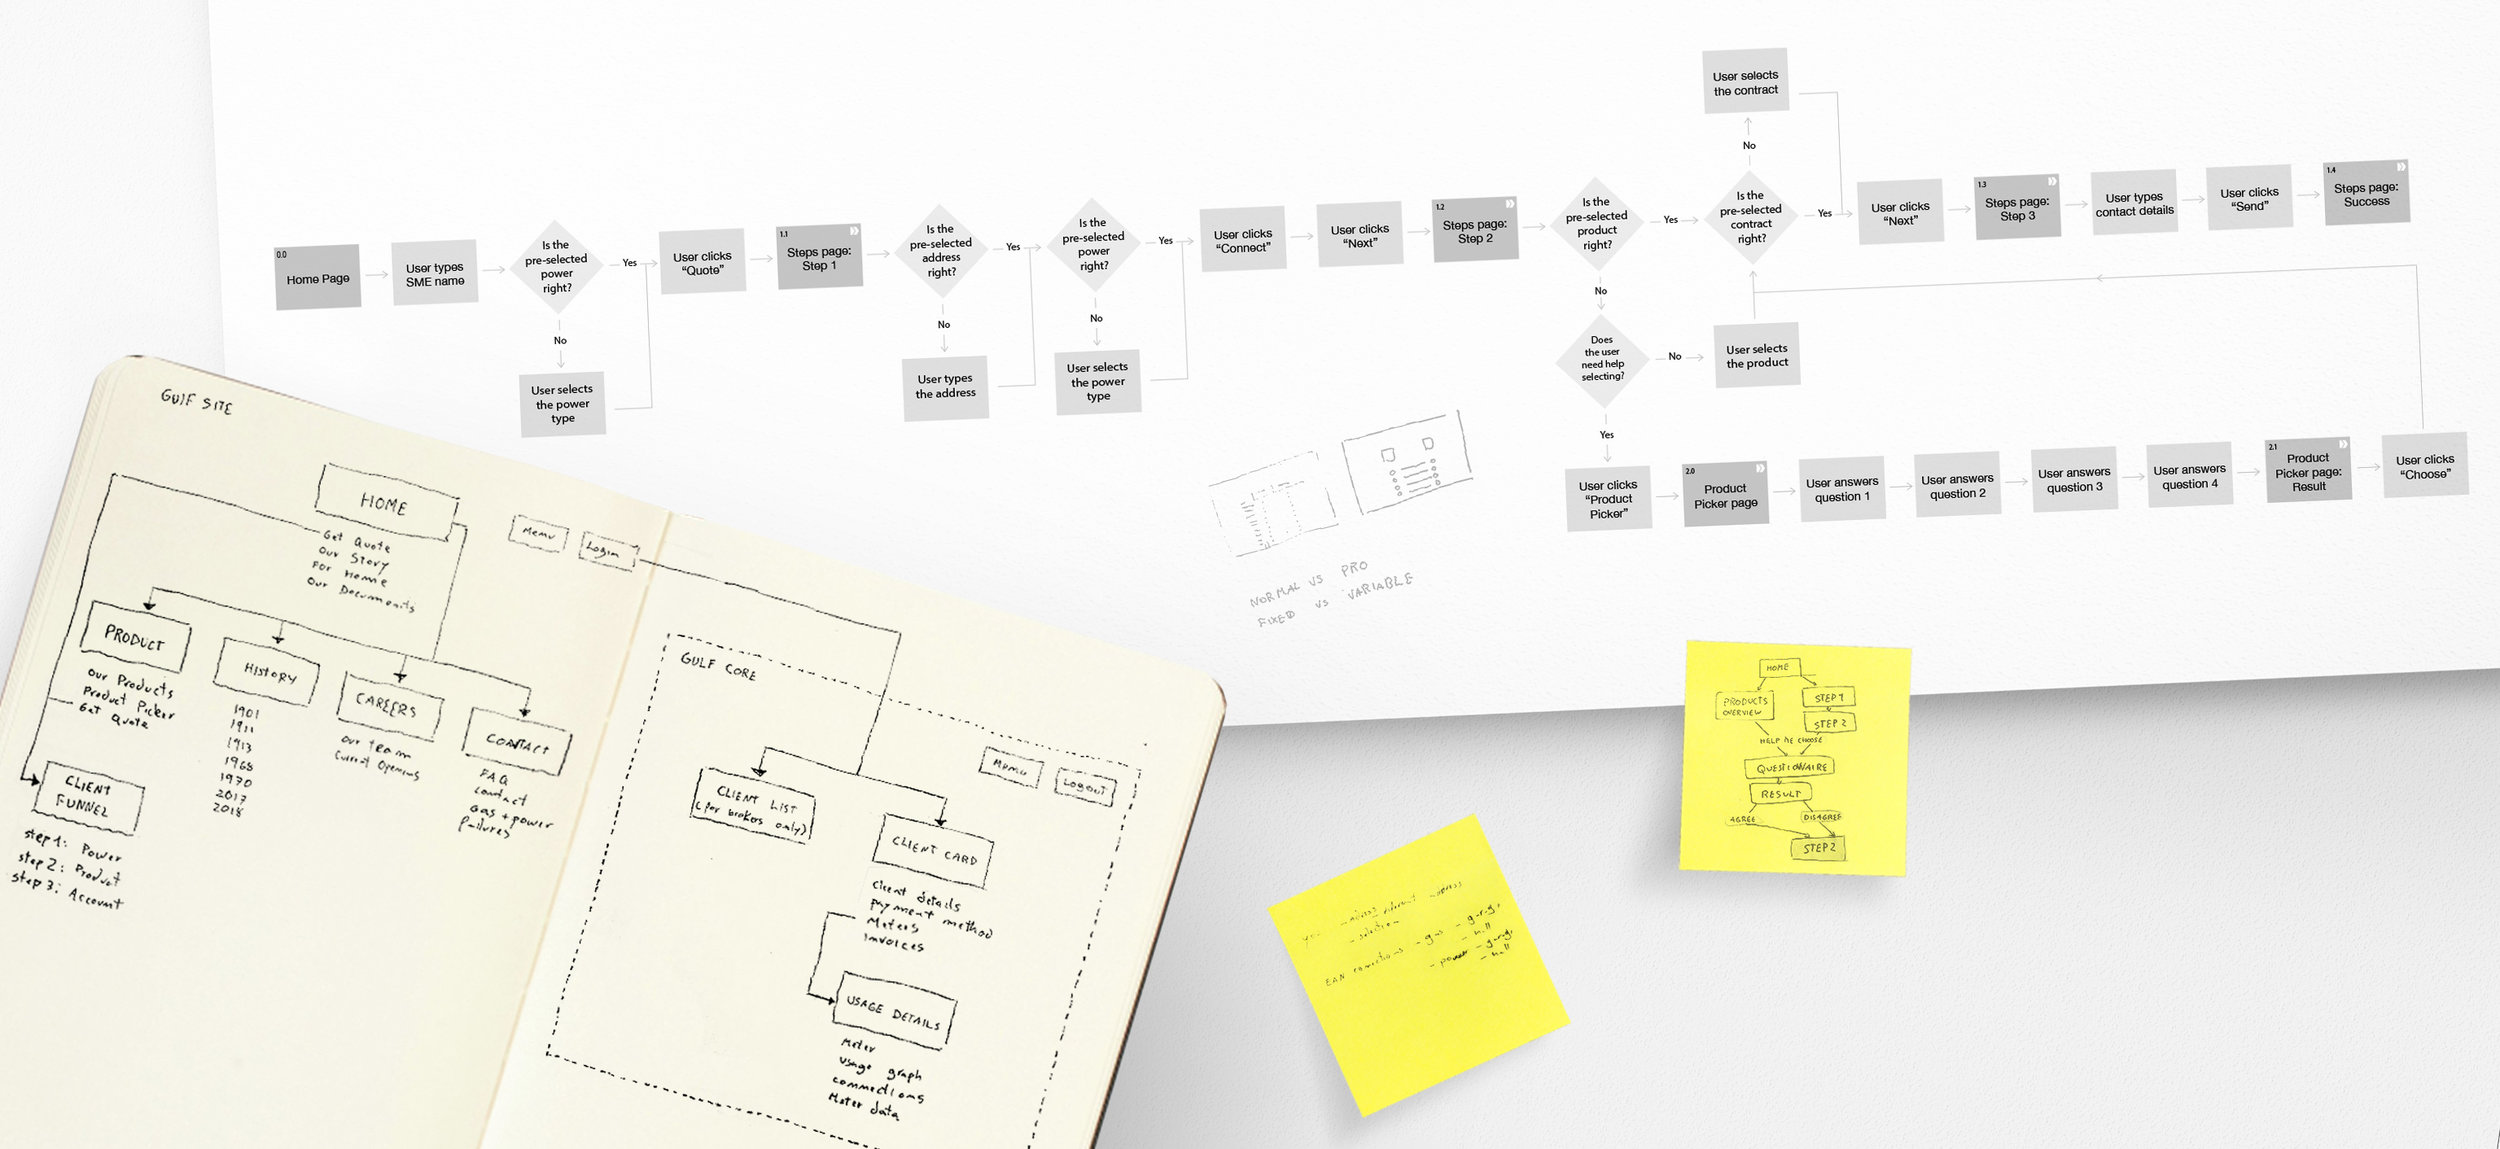 On the notebook: sitemap exploration. On Top: user flow for a user (SME owner) arriving through direct traffic and with the goal to get a quote. On the post-it to the right: the first low fidelity sketch of the same user flow.